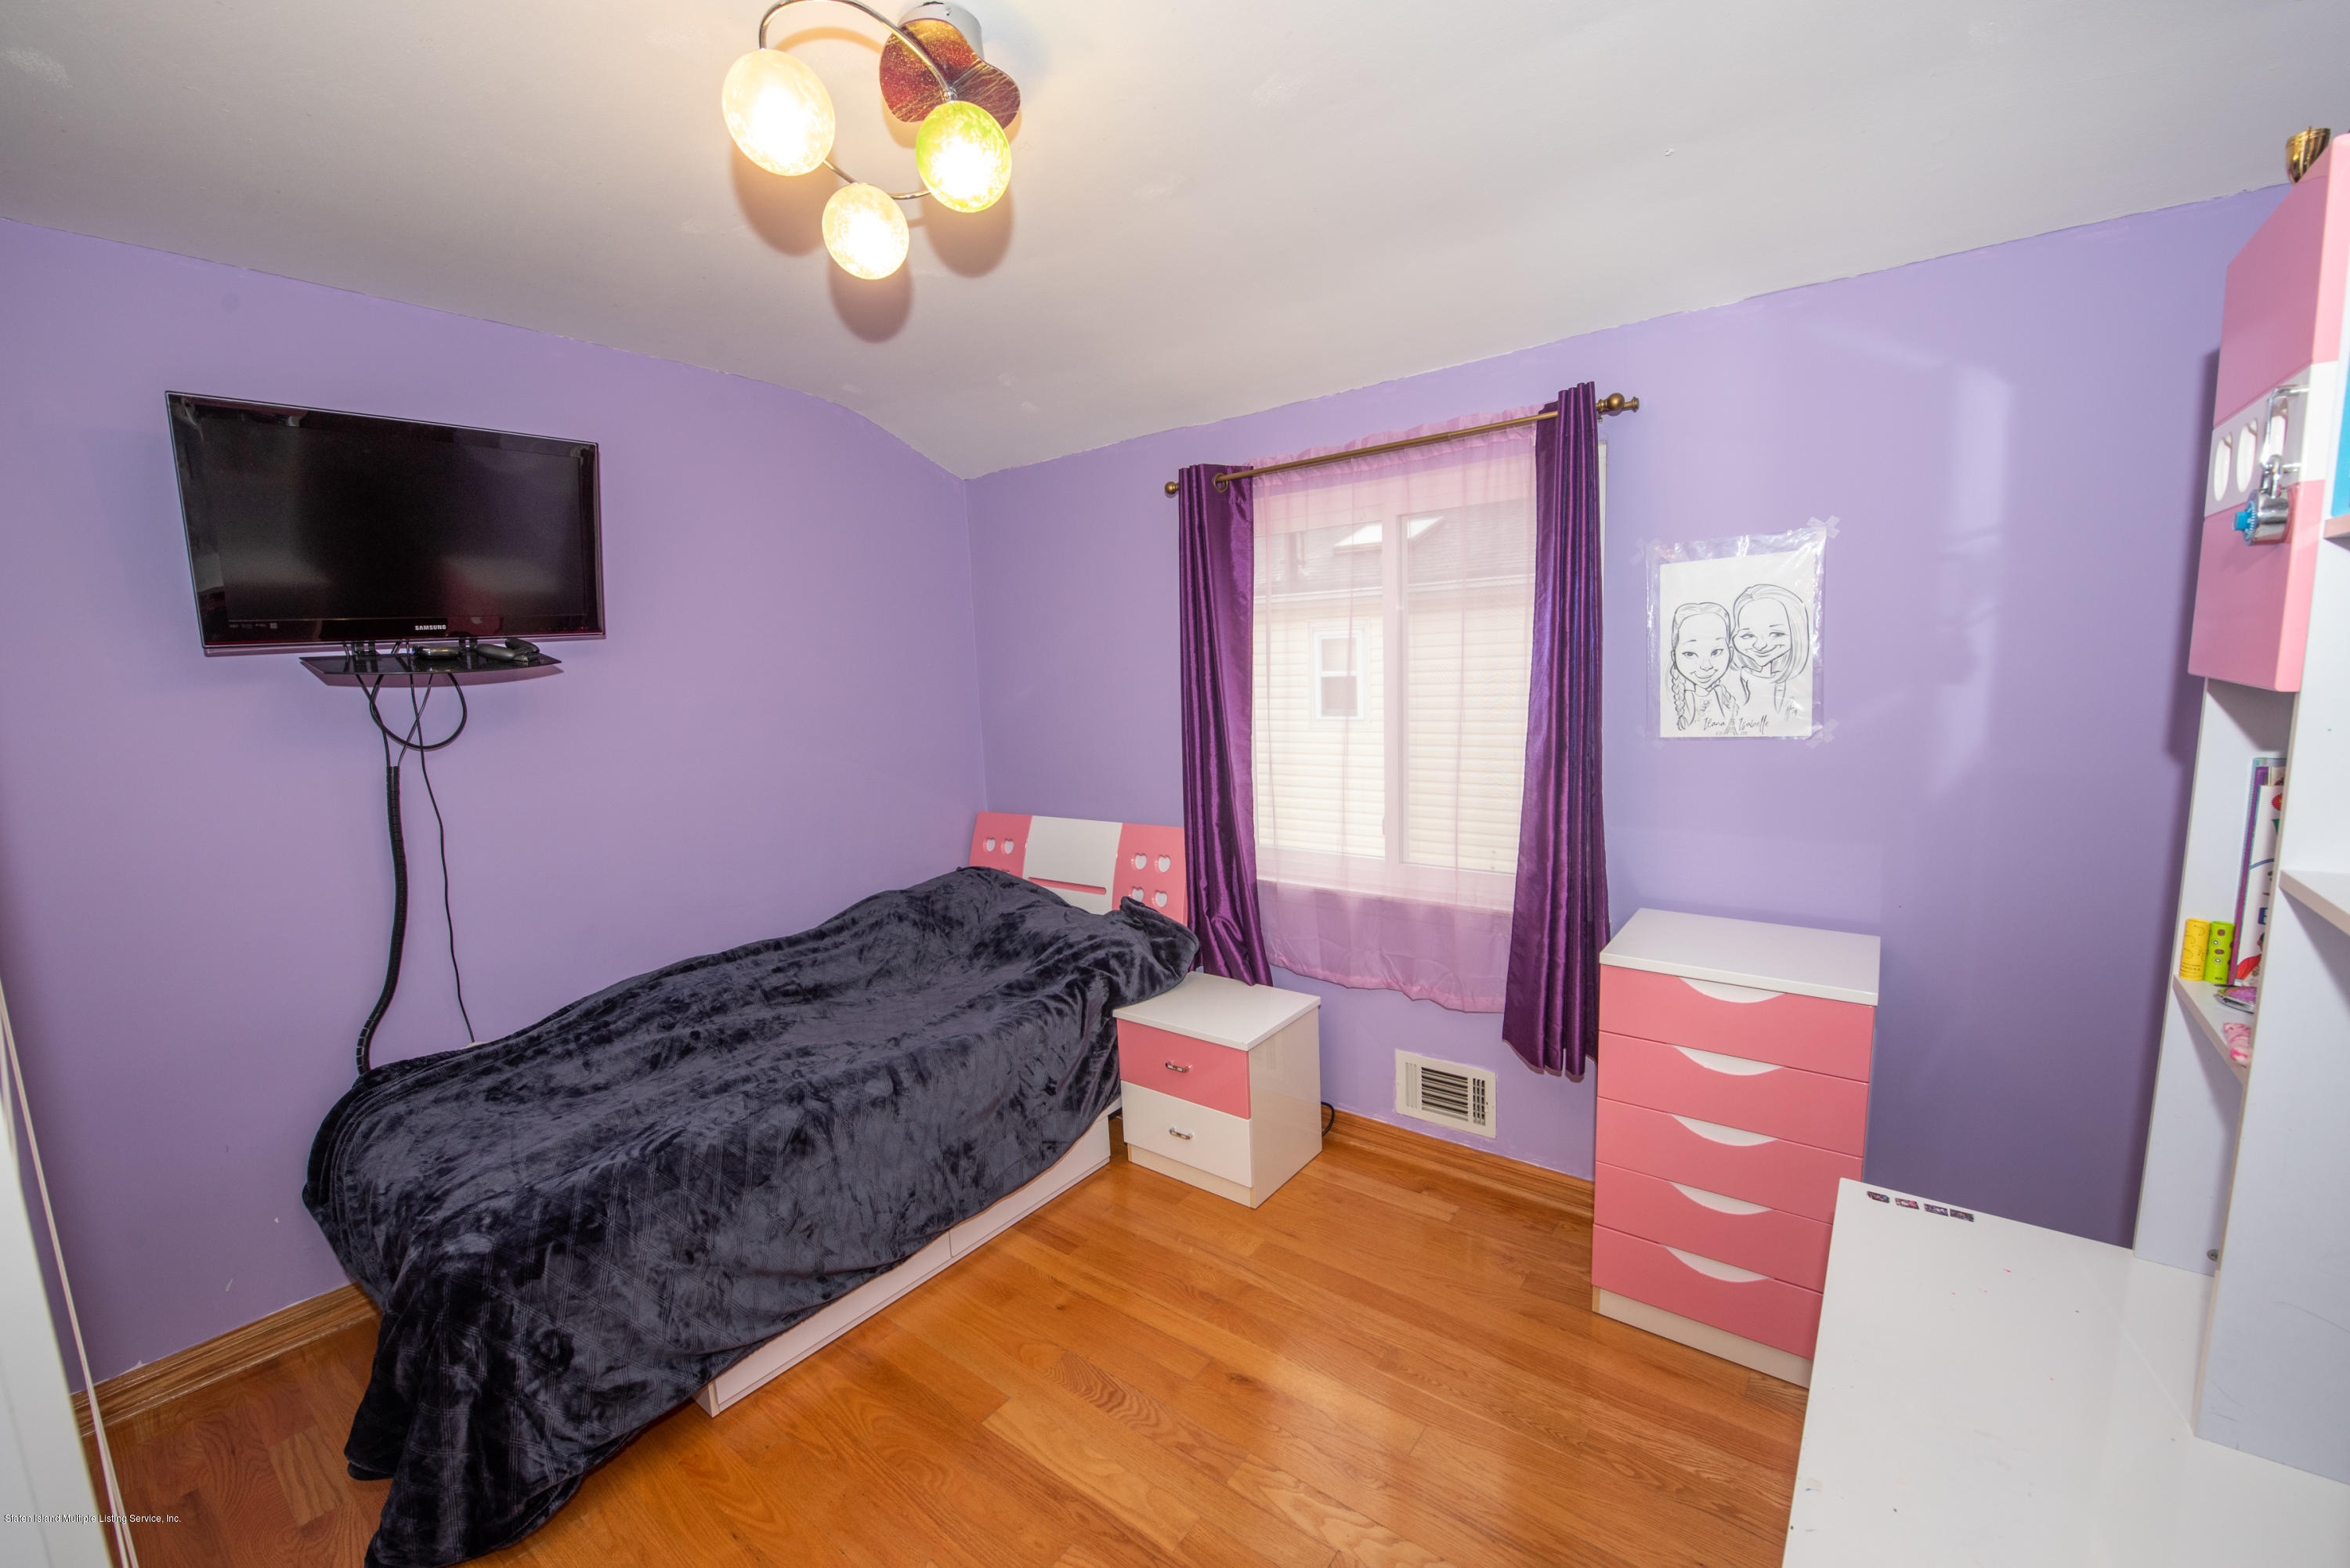 Single Family - Semi-Attached 76 Mcveigh Avenue  Staten Island, NY 10314, MLS-1133370-26